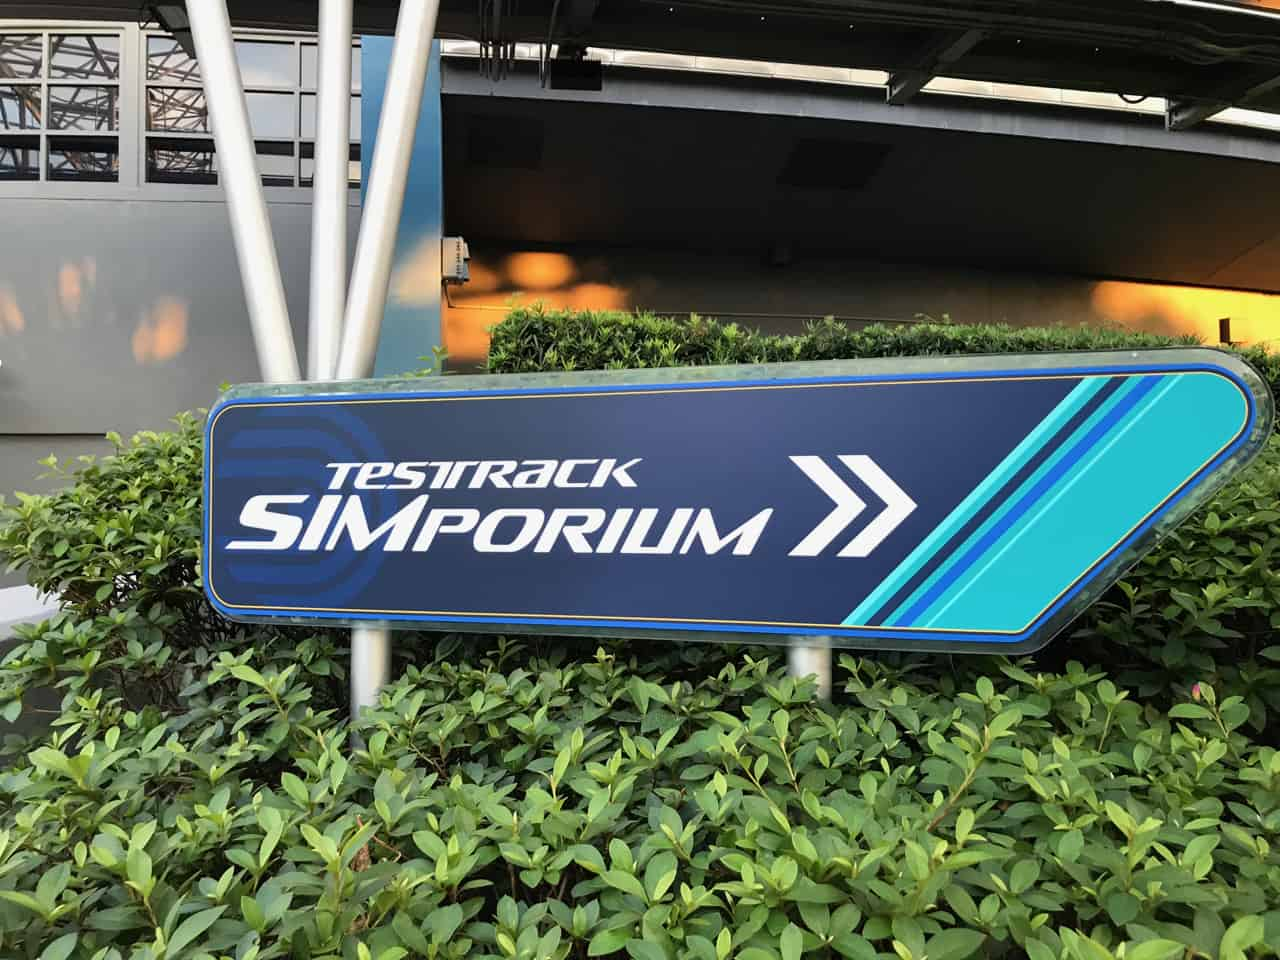 PHOTOS, VIDEO: New Test Track SIMporium Debuts with New Decor and Lighting Effects